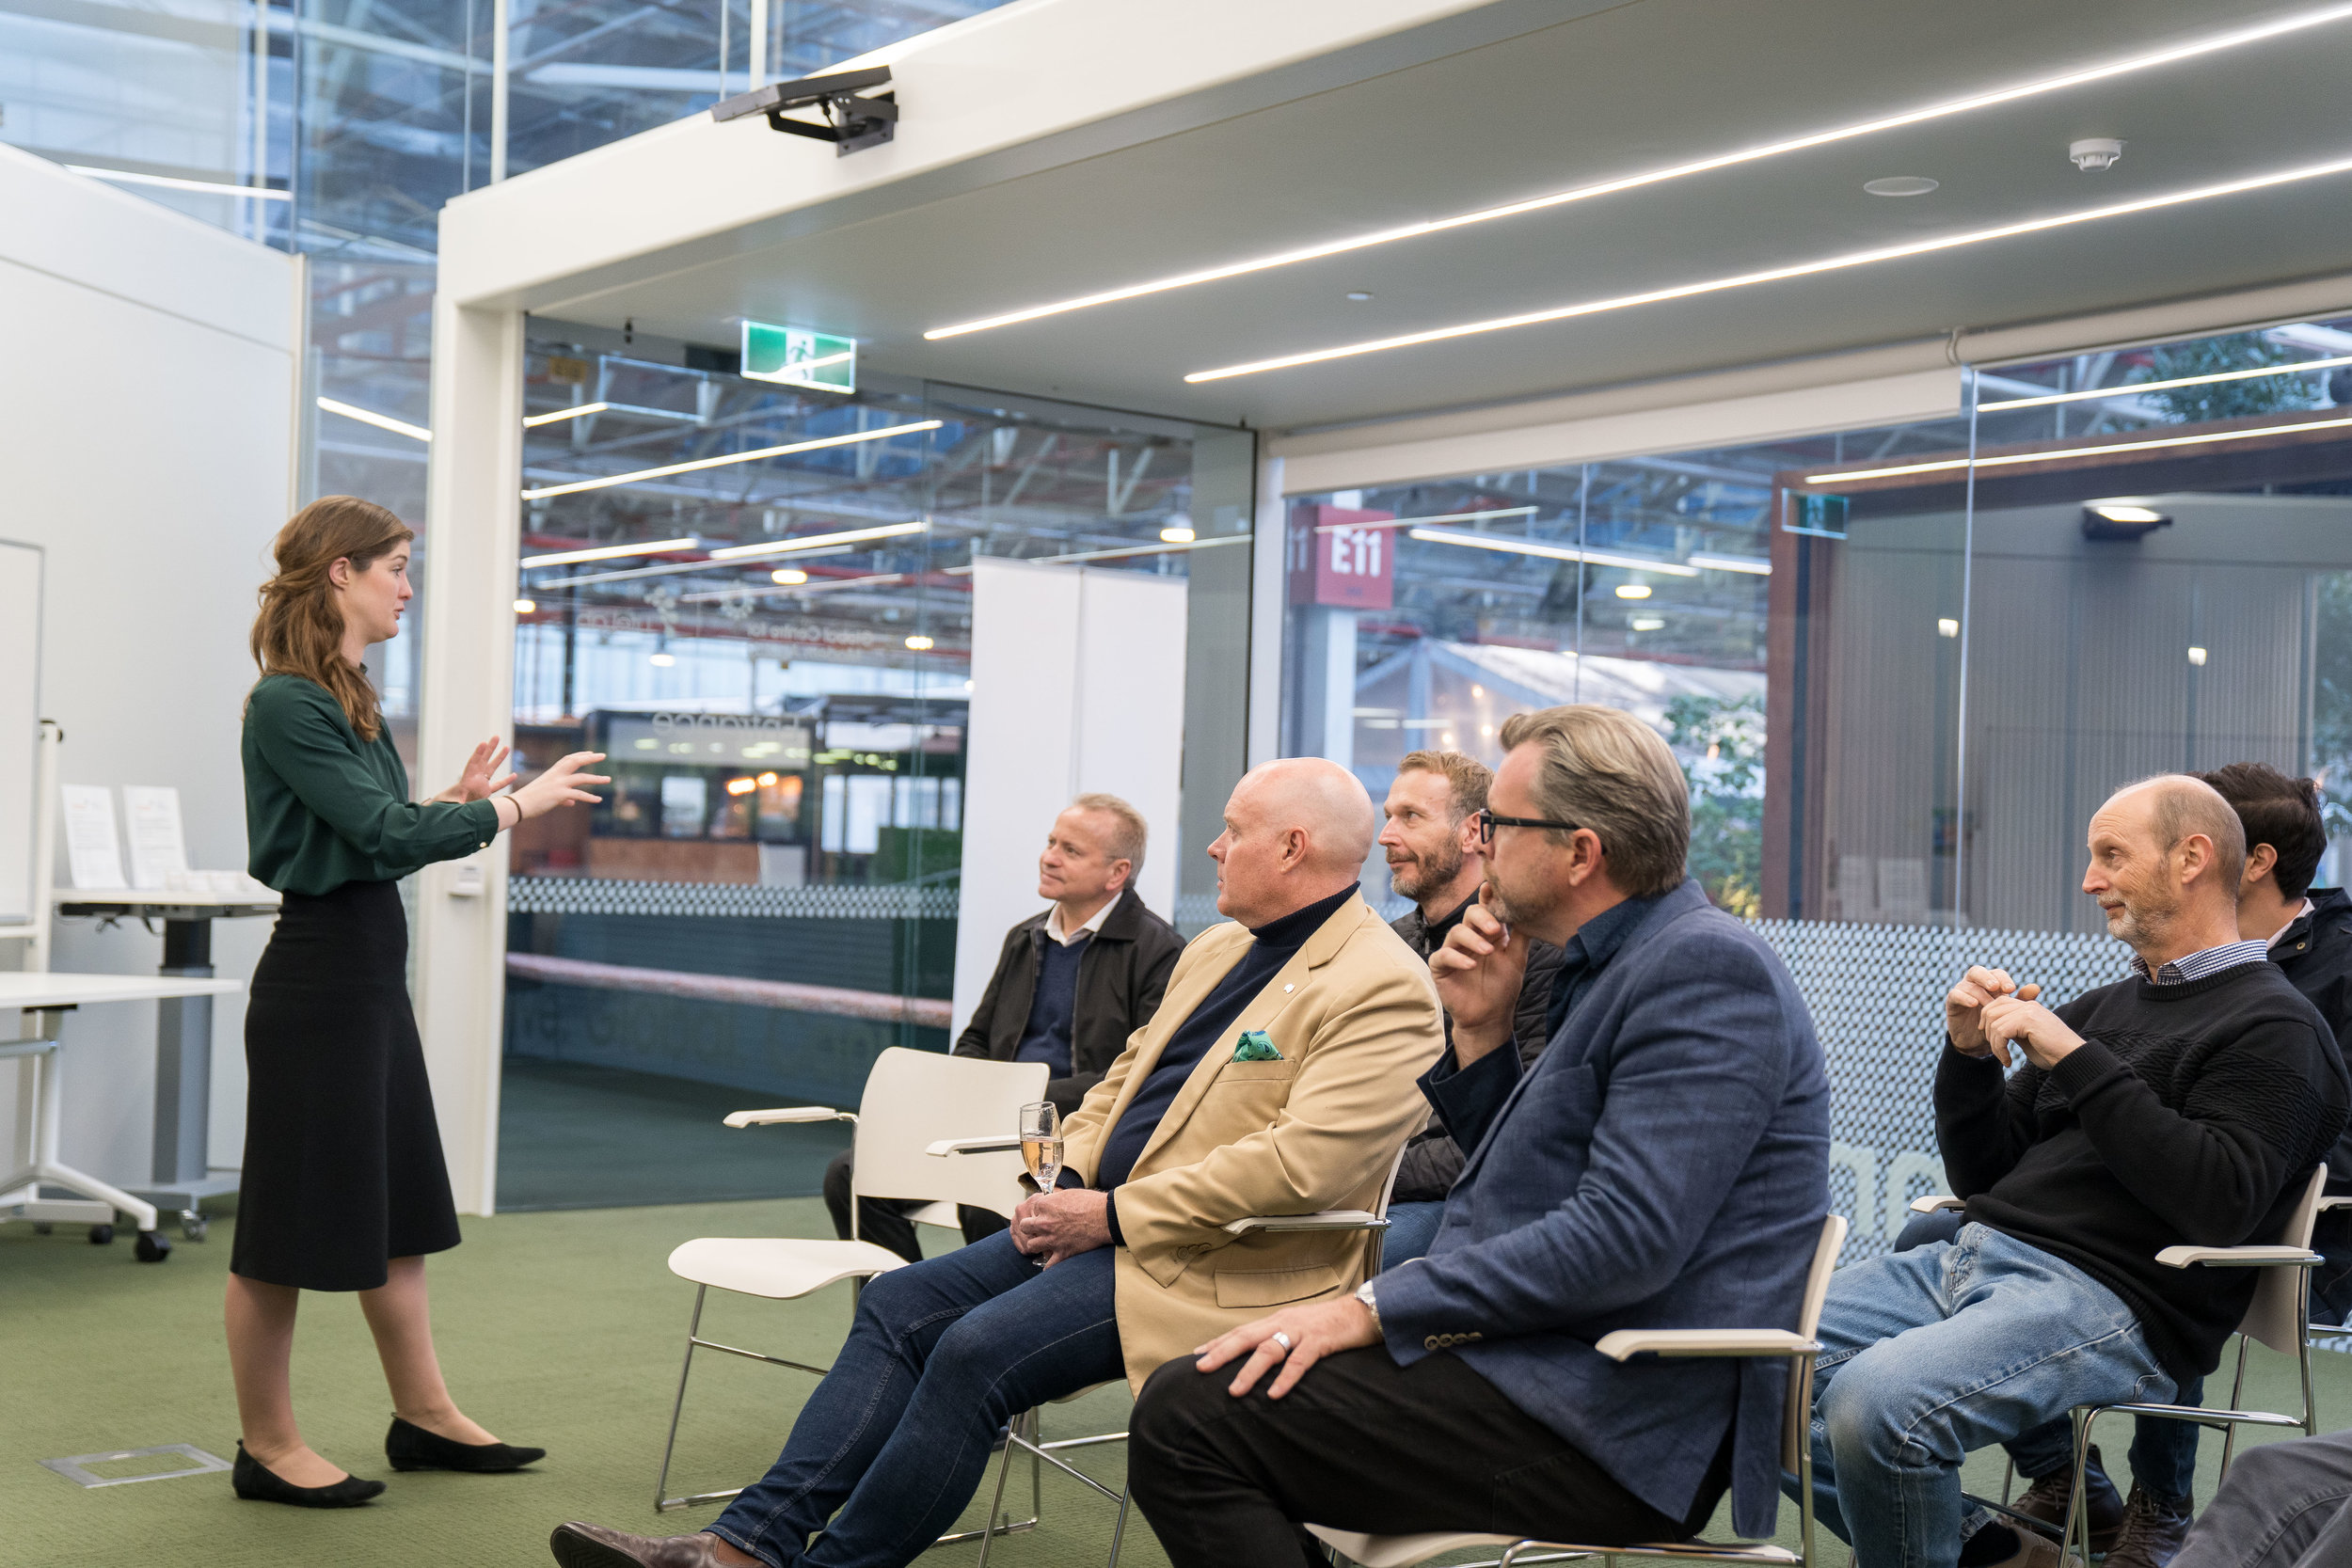 Tonsley Connection - 7 - 31 - 2019-45.jpg